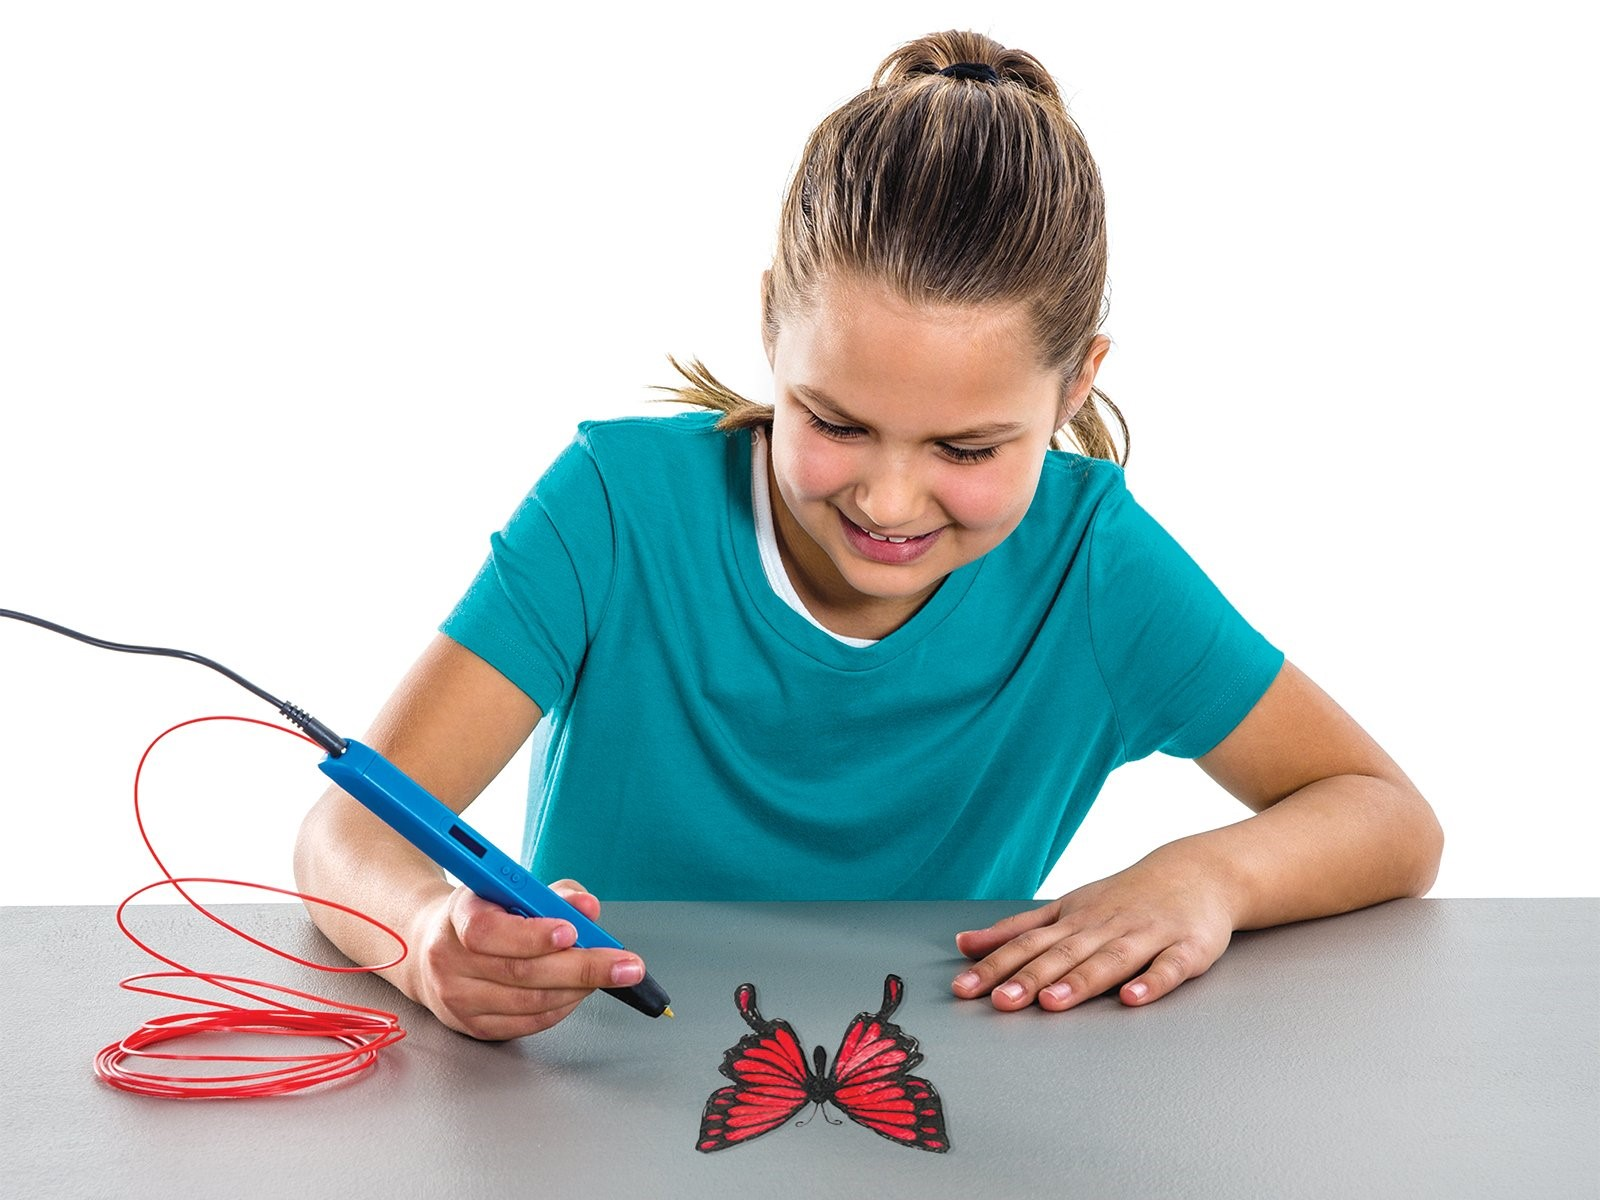 Magic 3D Pen Fun for Summer